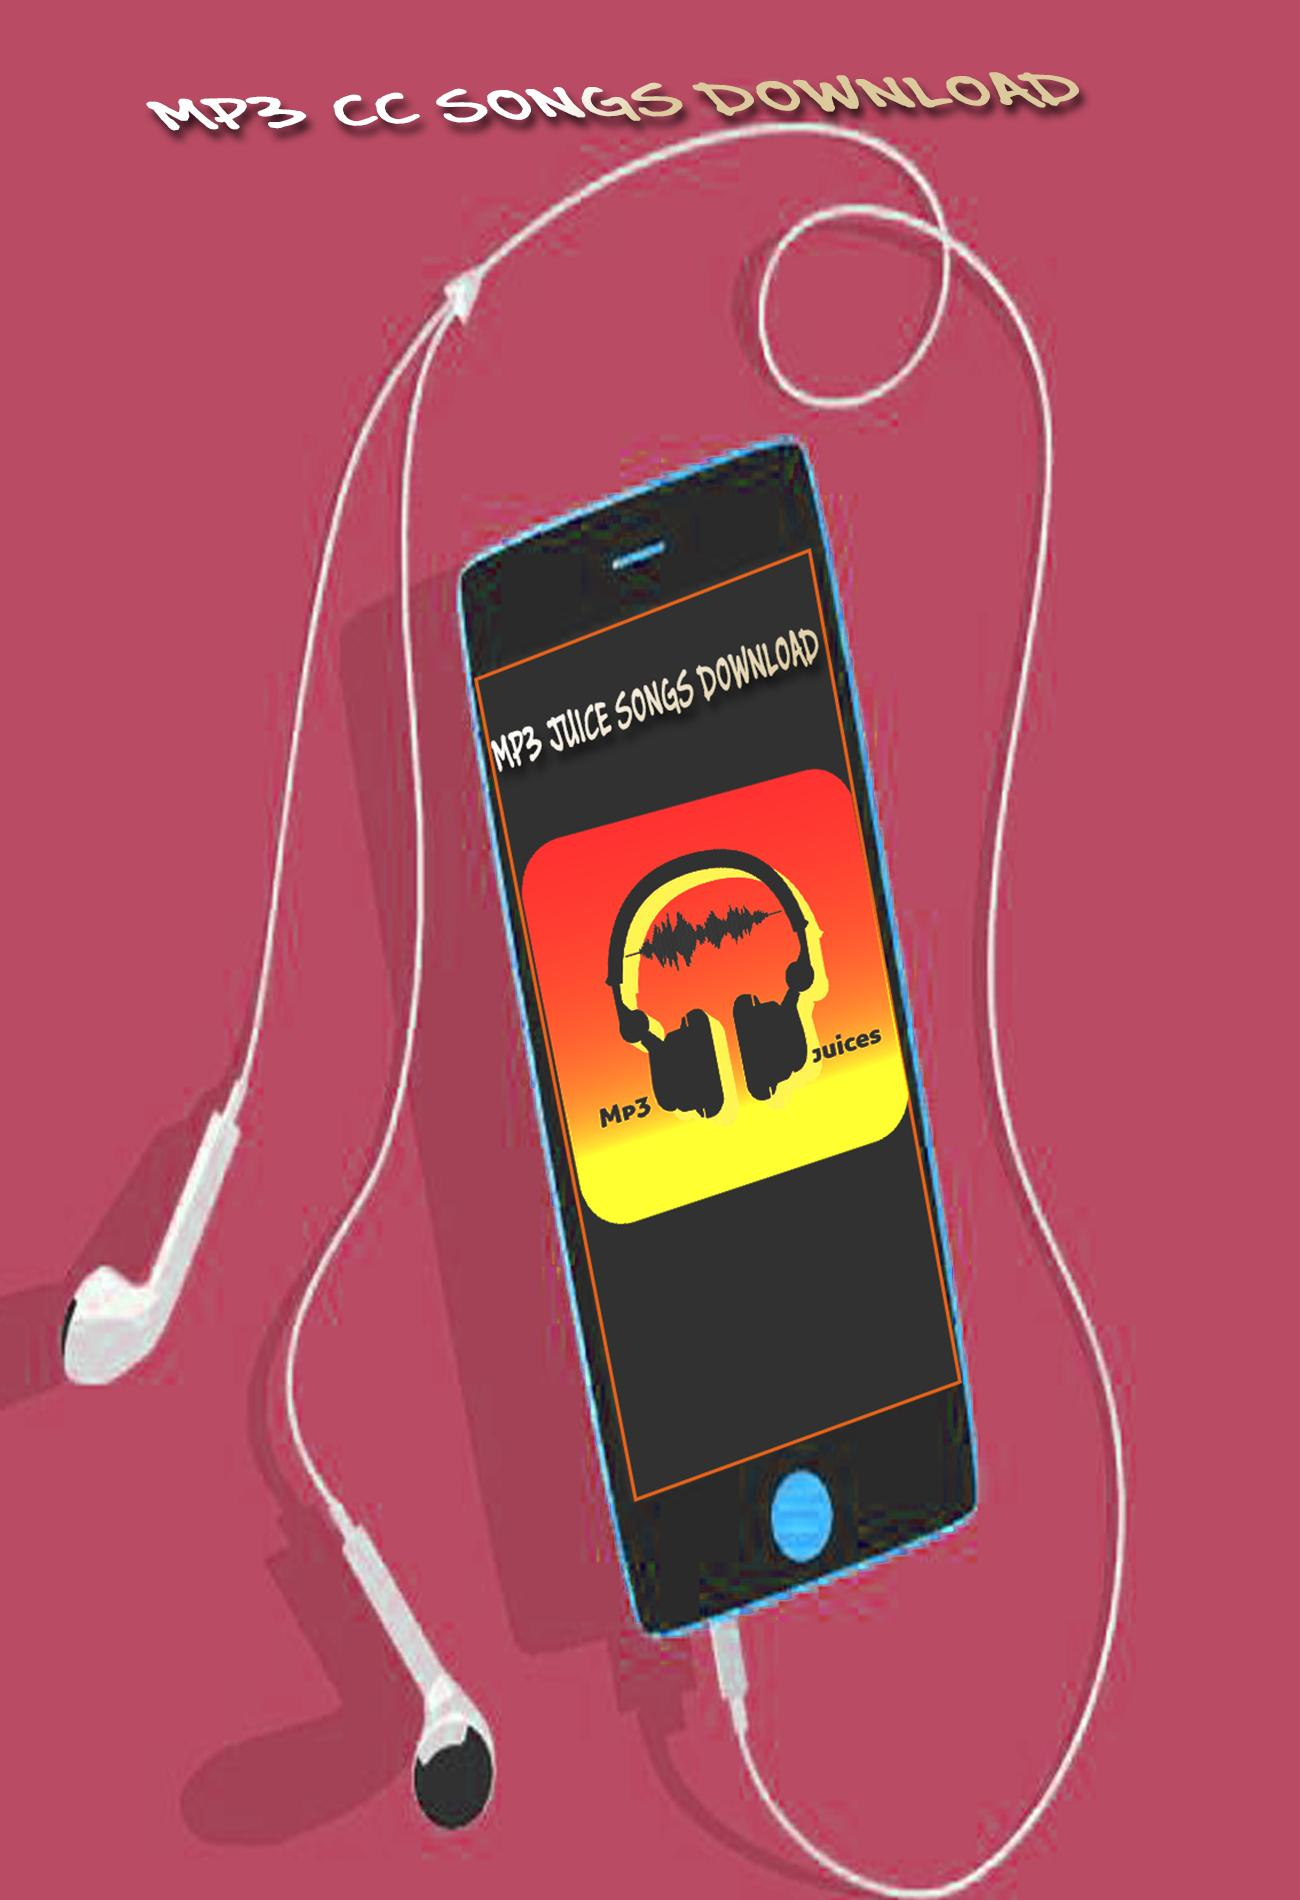 mp3 juice| download free for Android - APK Download